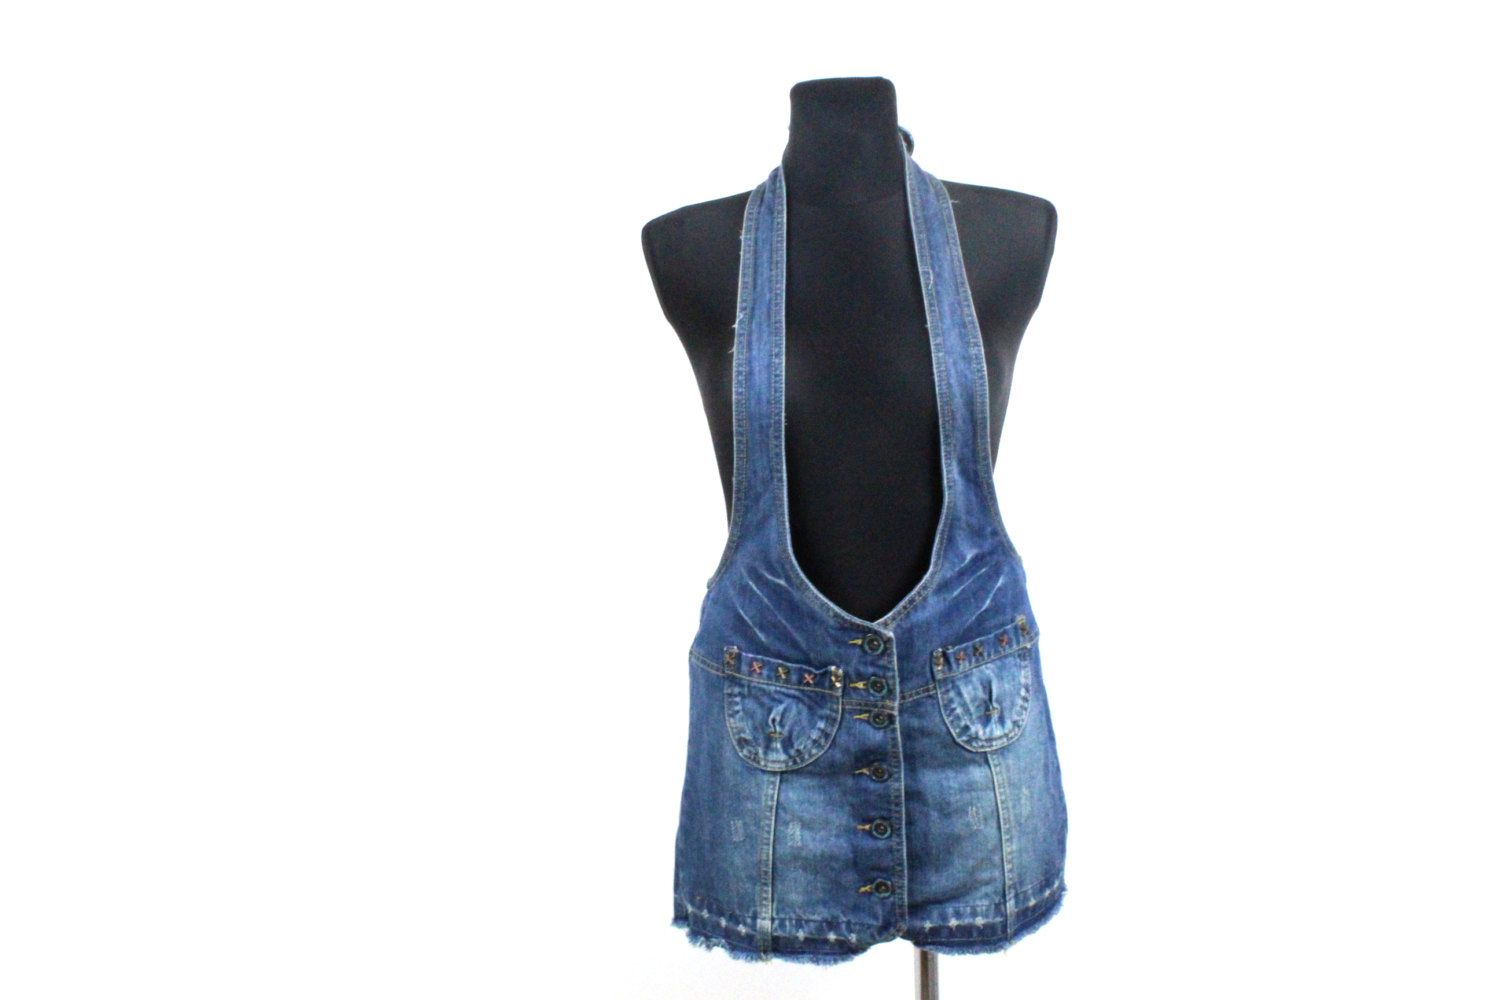 d3c19056c9 Button up Skirtall SARAFAN Blue denim overall Jean dress Grunge Sarafan 90s  Dungaree Vintage Mini skirt   Small Medium by Prettyawesomevintage on Etsy